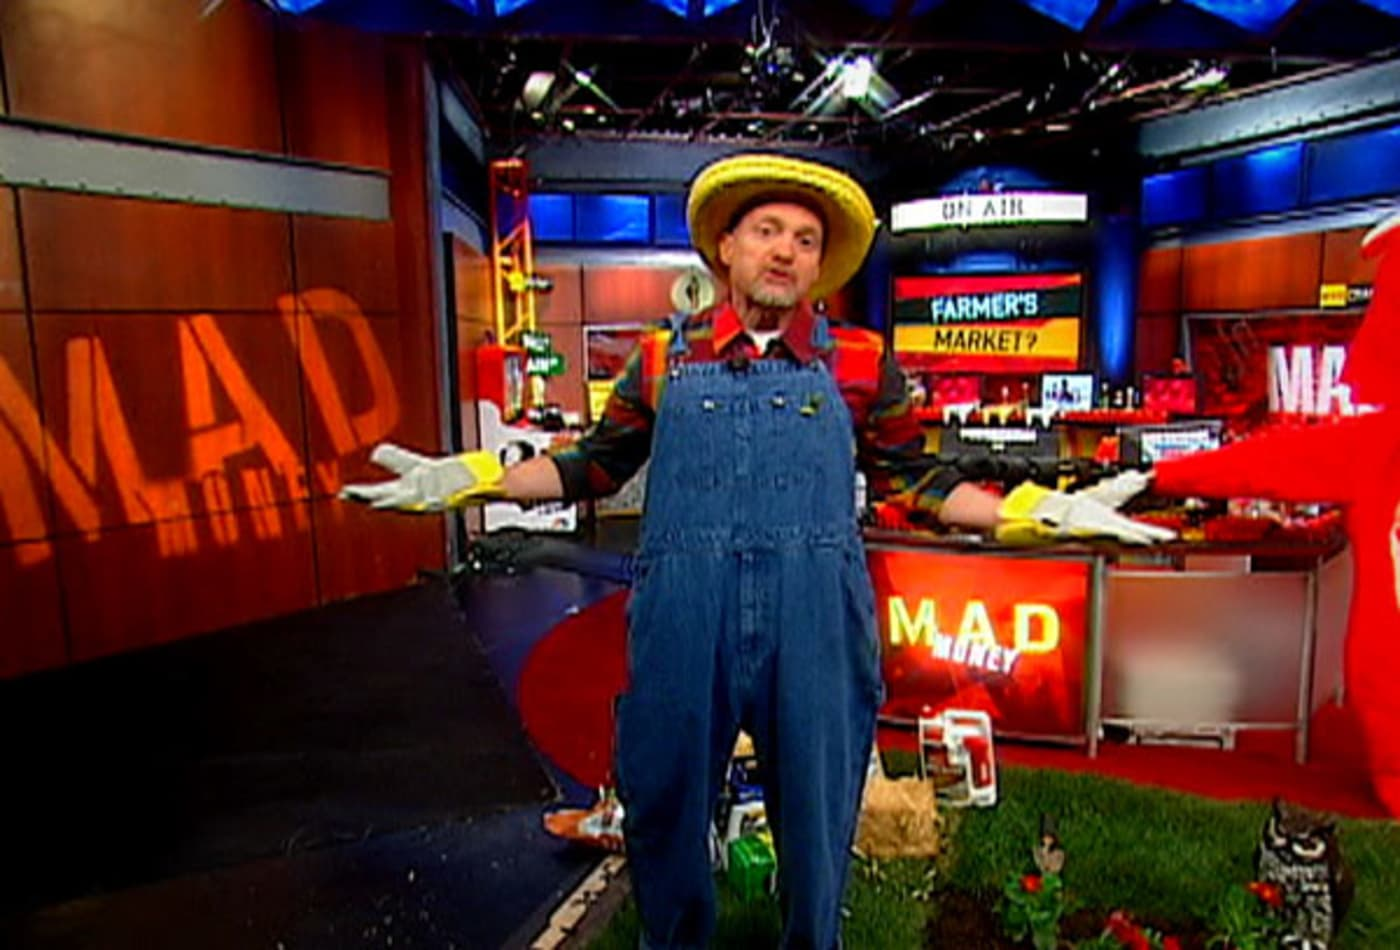 Farmer-Craziest-Costume-Ideas-Jim-Cramer.jpg